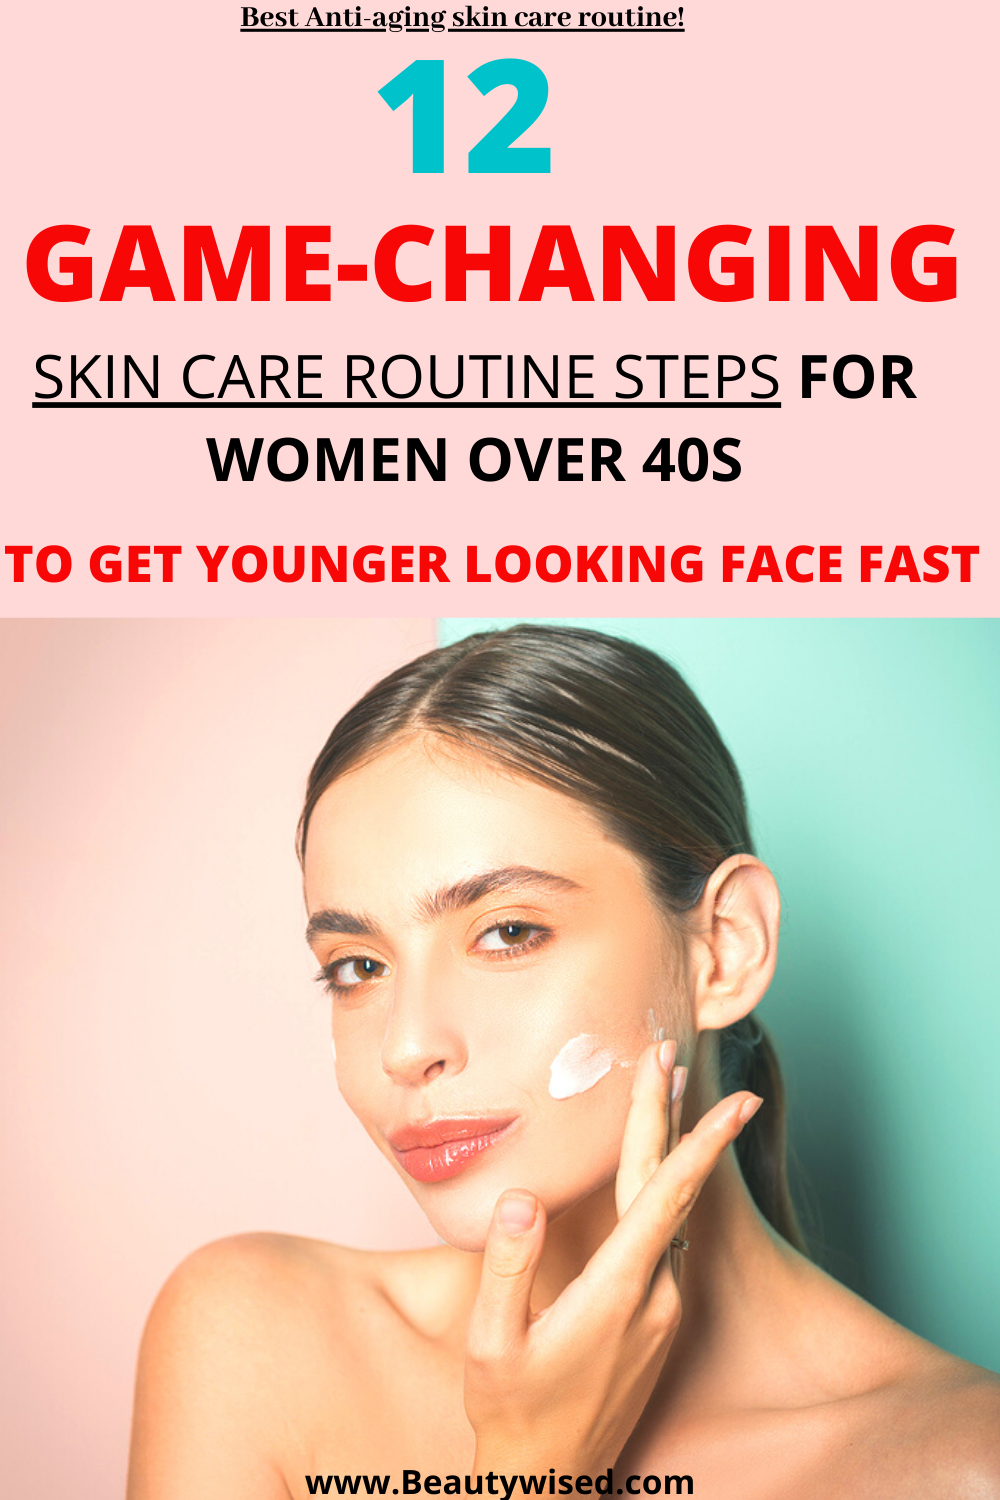 The Ultimate Best Daily Weekly Monthly Anti Aging Skincare Routine For 40s Wome In 2020 Anti Aging Skincare Routine Best Skin Care Routine Natural Skin Care Routine